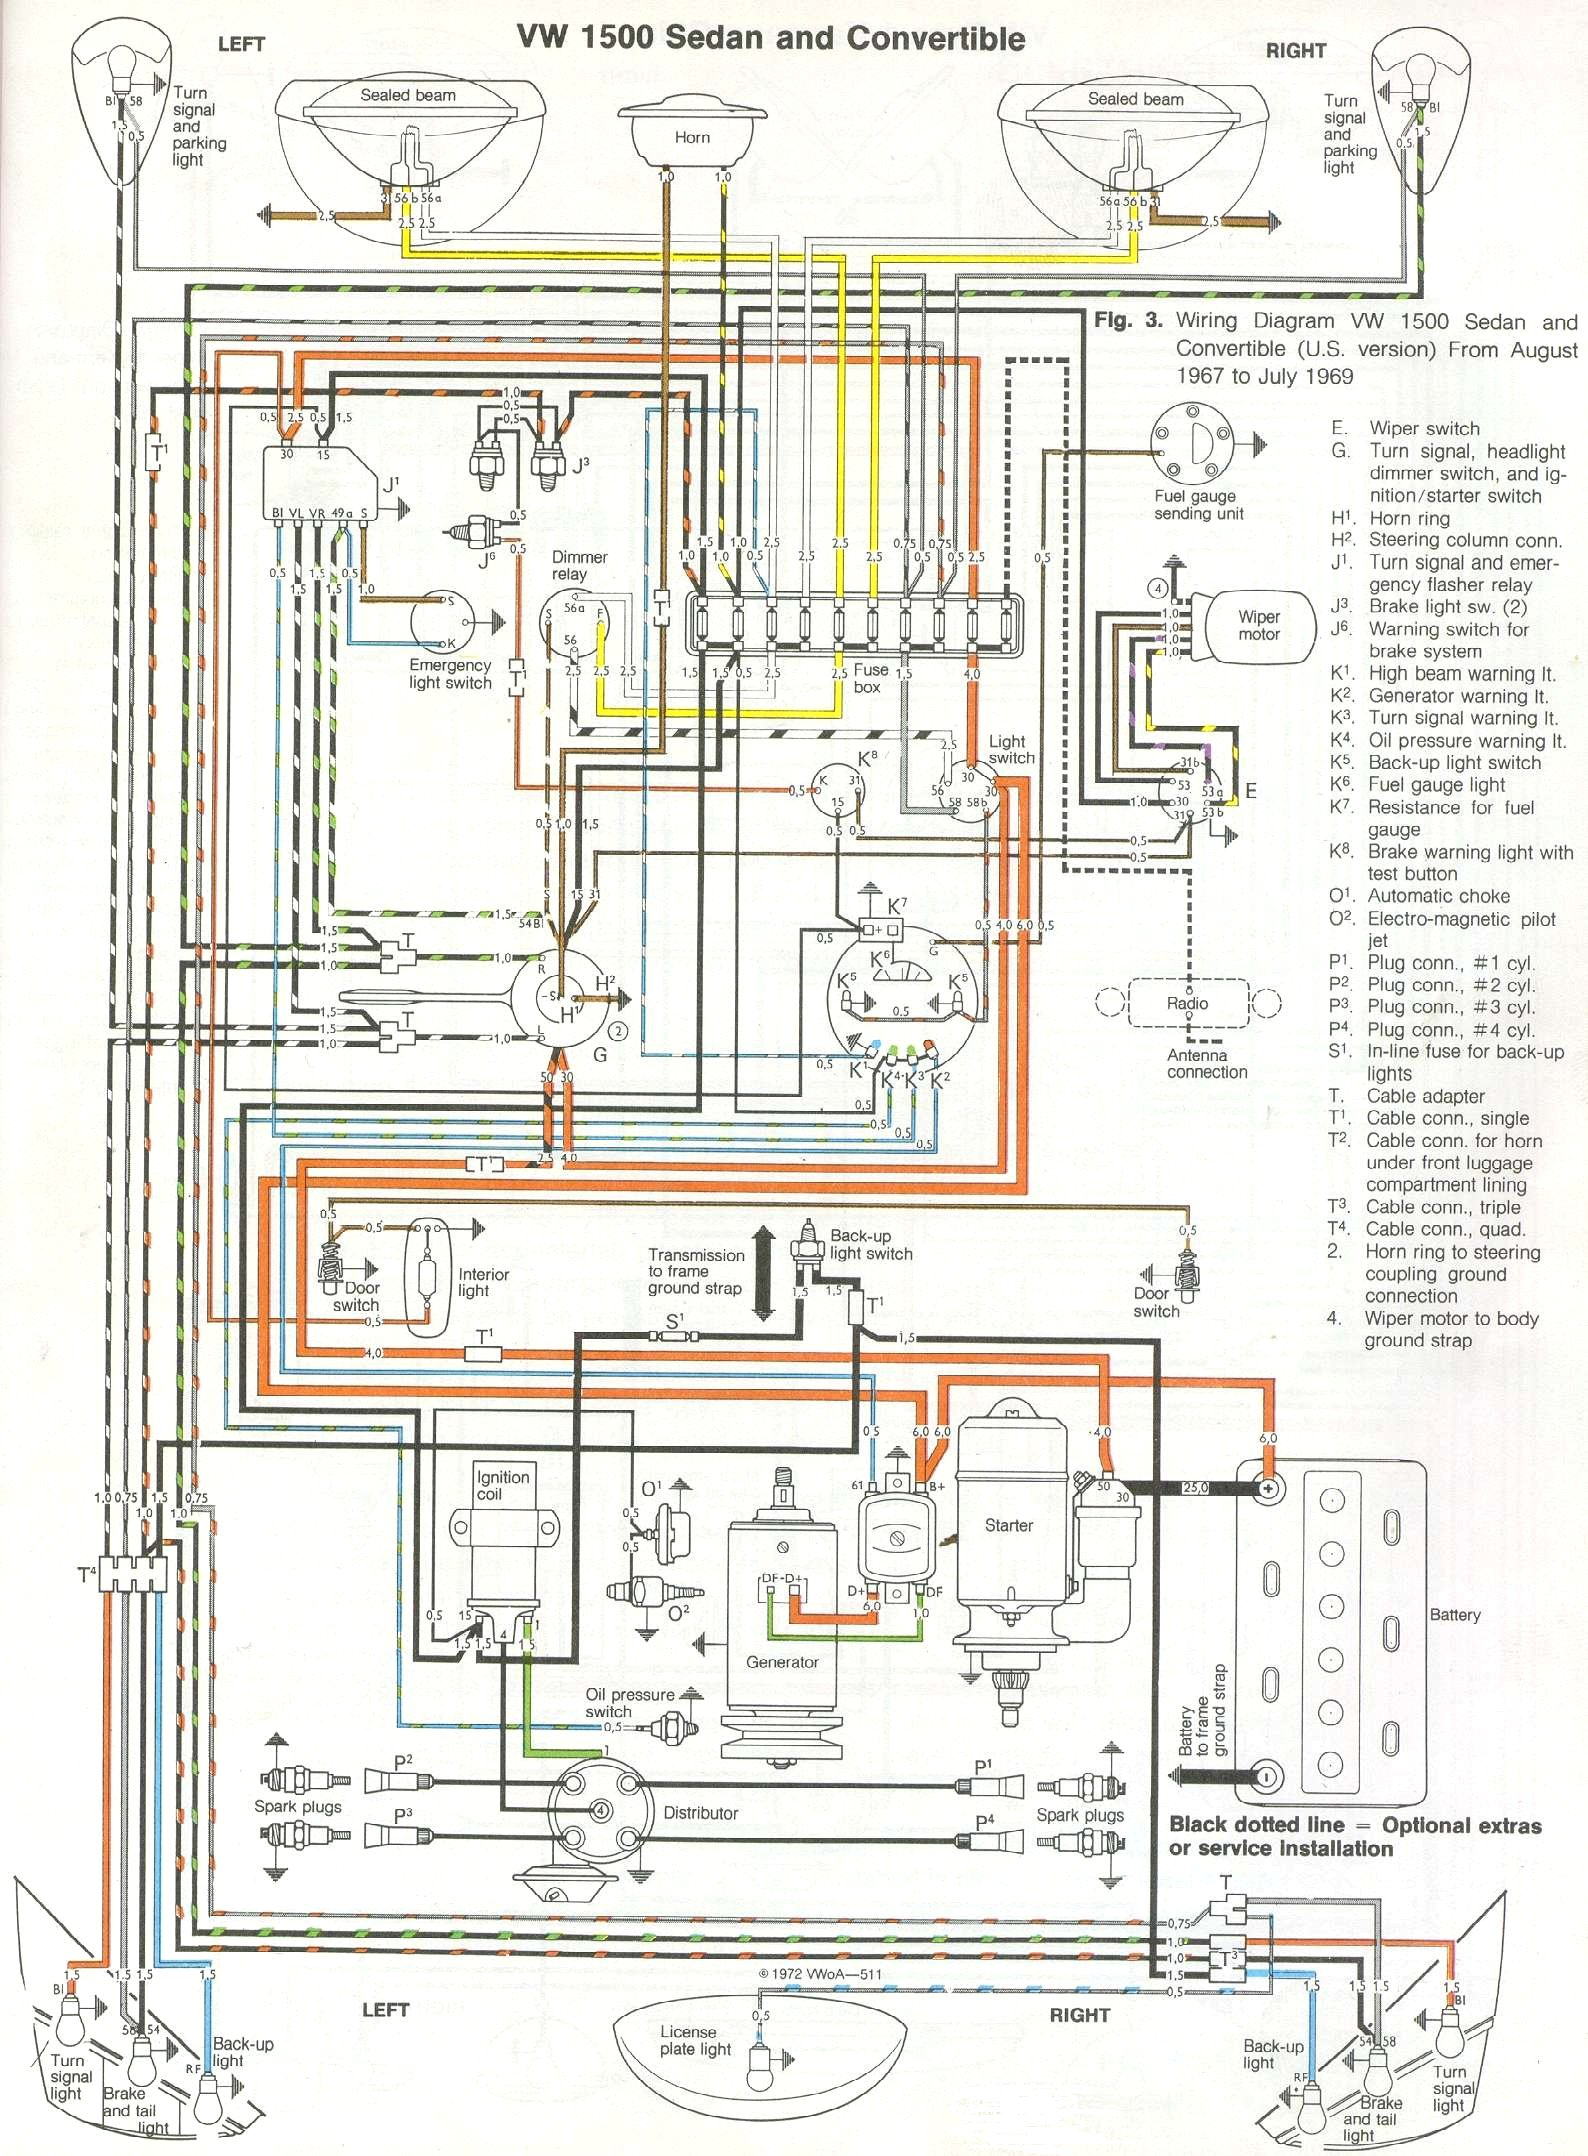 bug_6869 thesamba com type 1 wiring diagrams 1973 vw wiring diagram at fashall.co